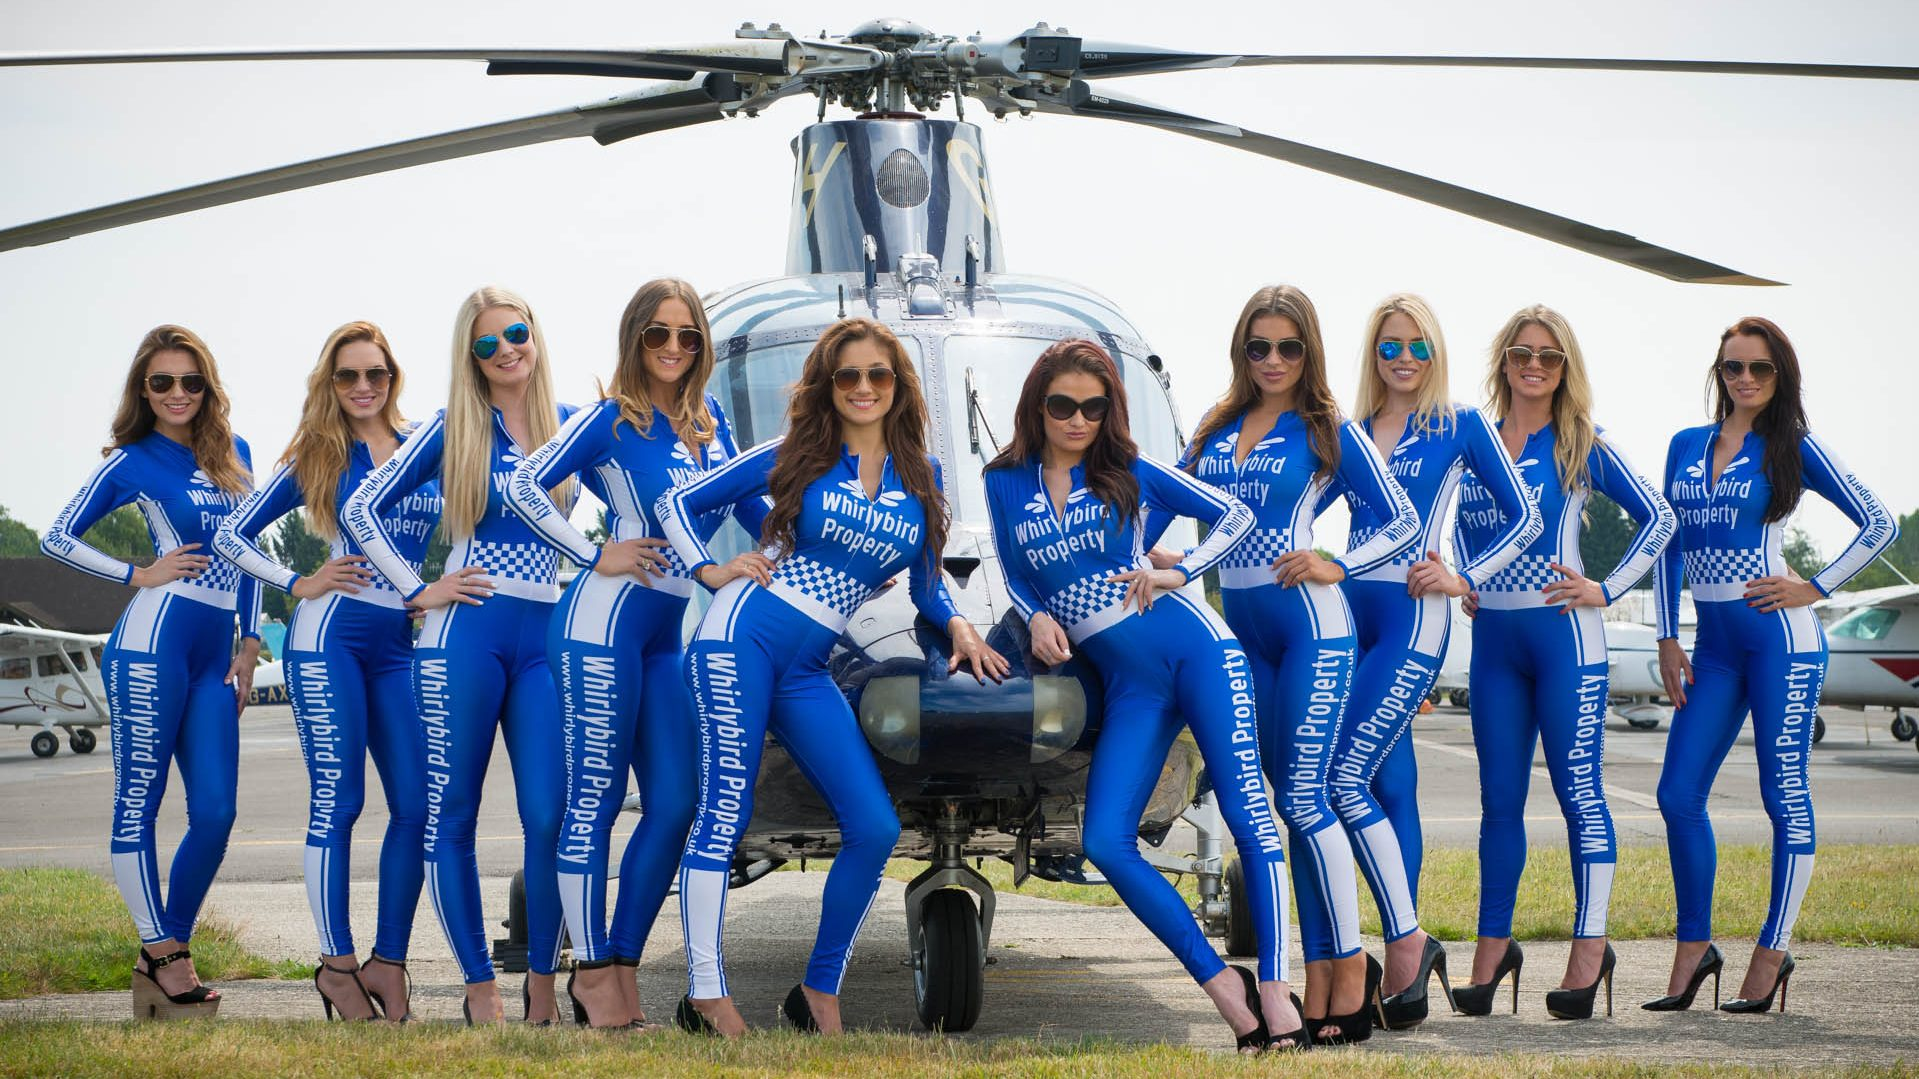 THE HOSTESS COMPANY - Gridgirl Outfits - Catsuits